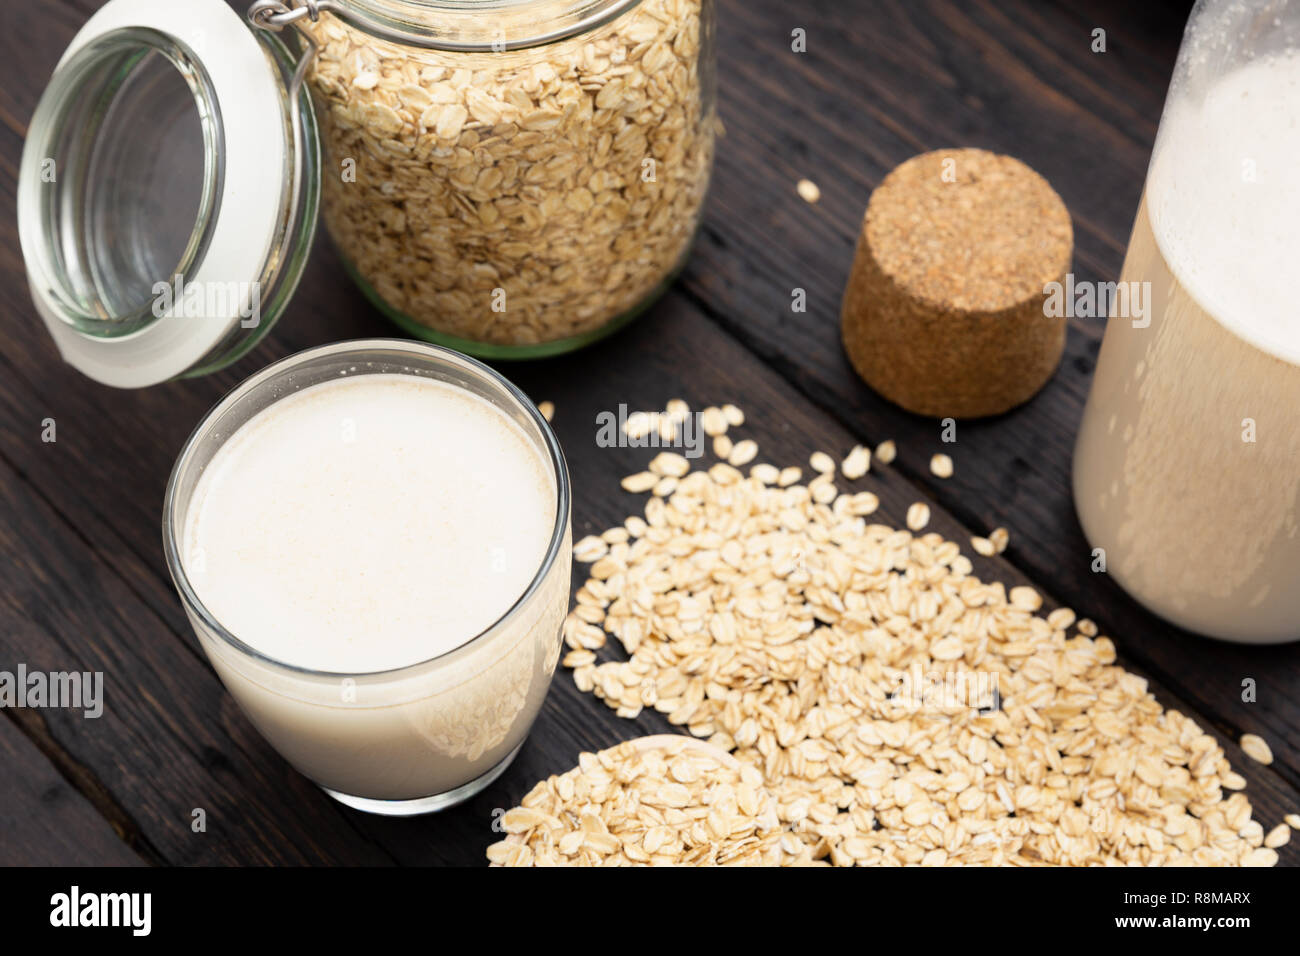 Glass of vegan, dairy-free oat milk and oats on a dark wooden background with texture. Concept of a vegan diet. - Stock Image